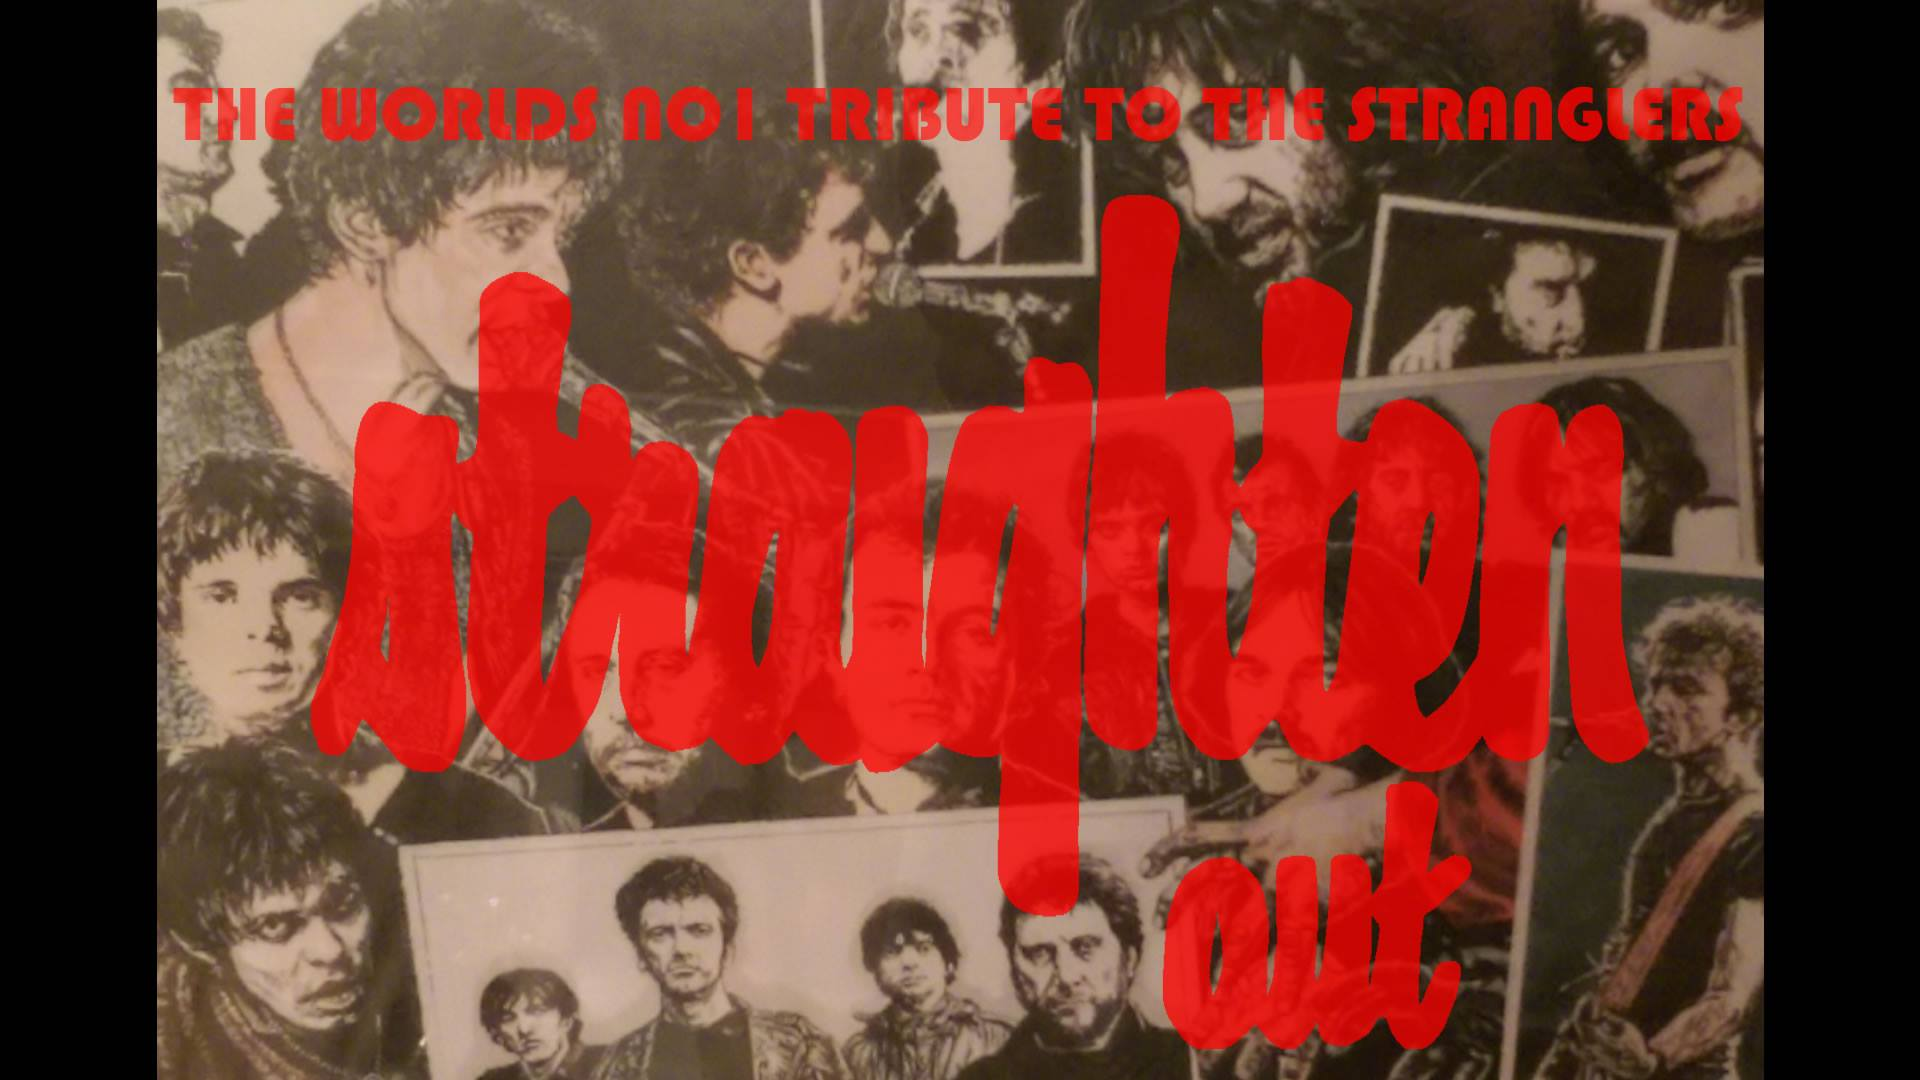 The Stranglers performed by Straighten Out